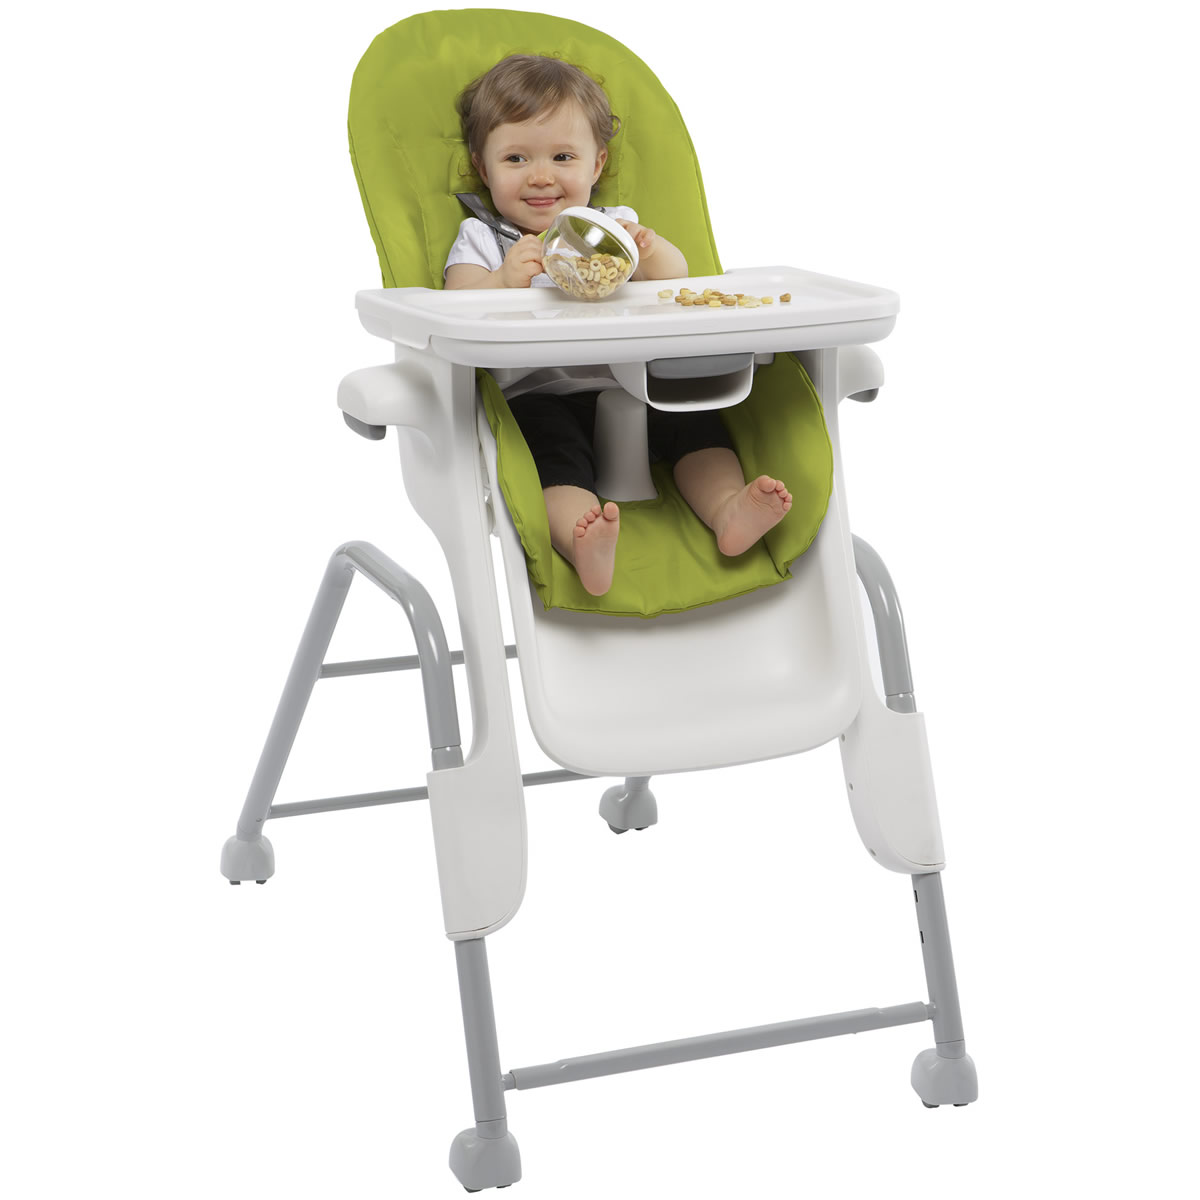 oxo tot high chair recall youtube wedding covers review seedling